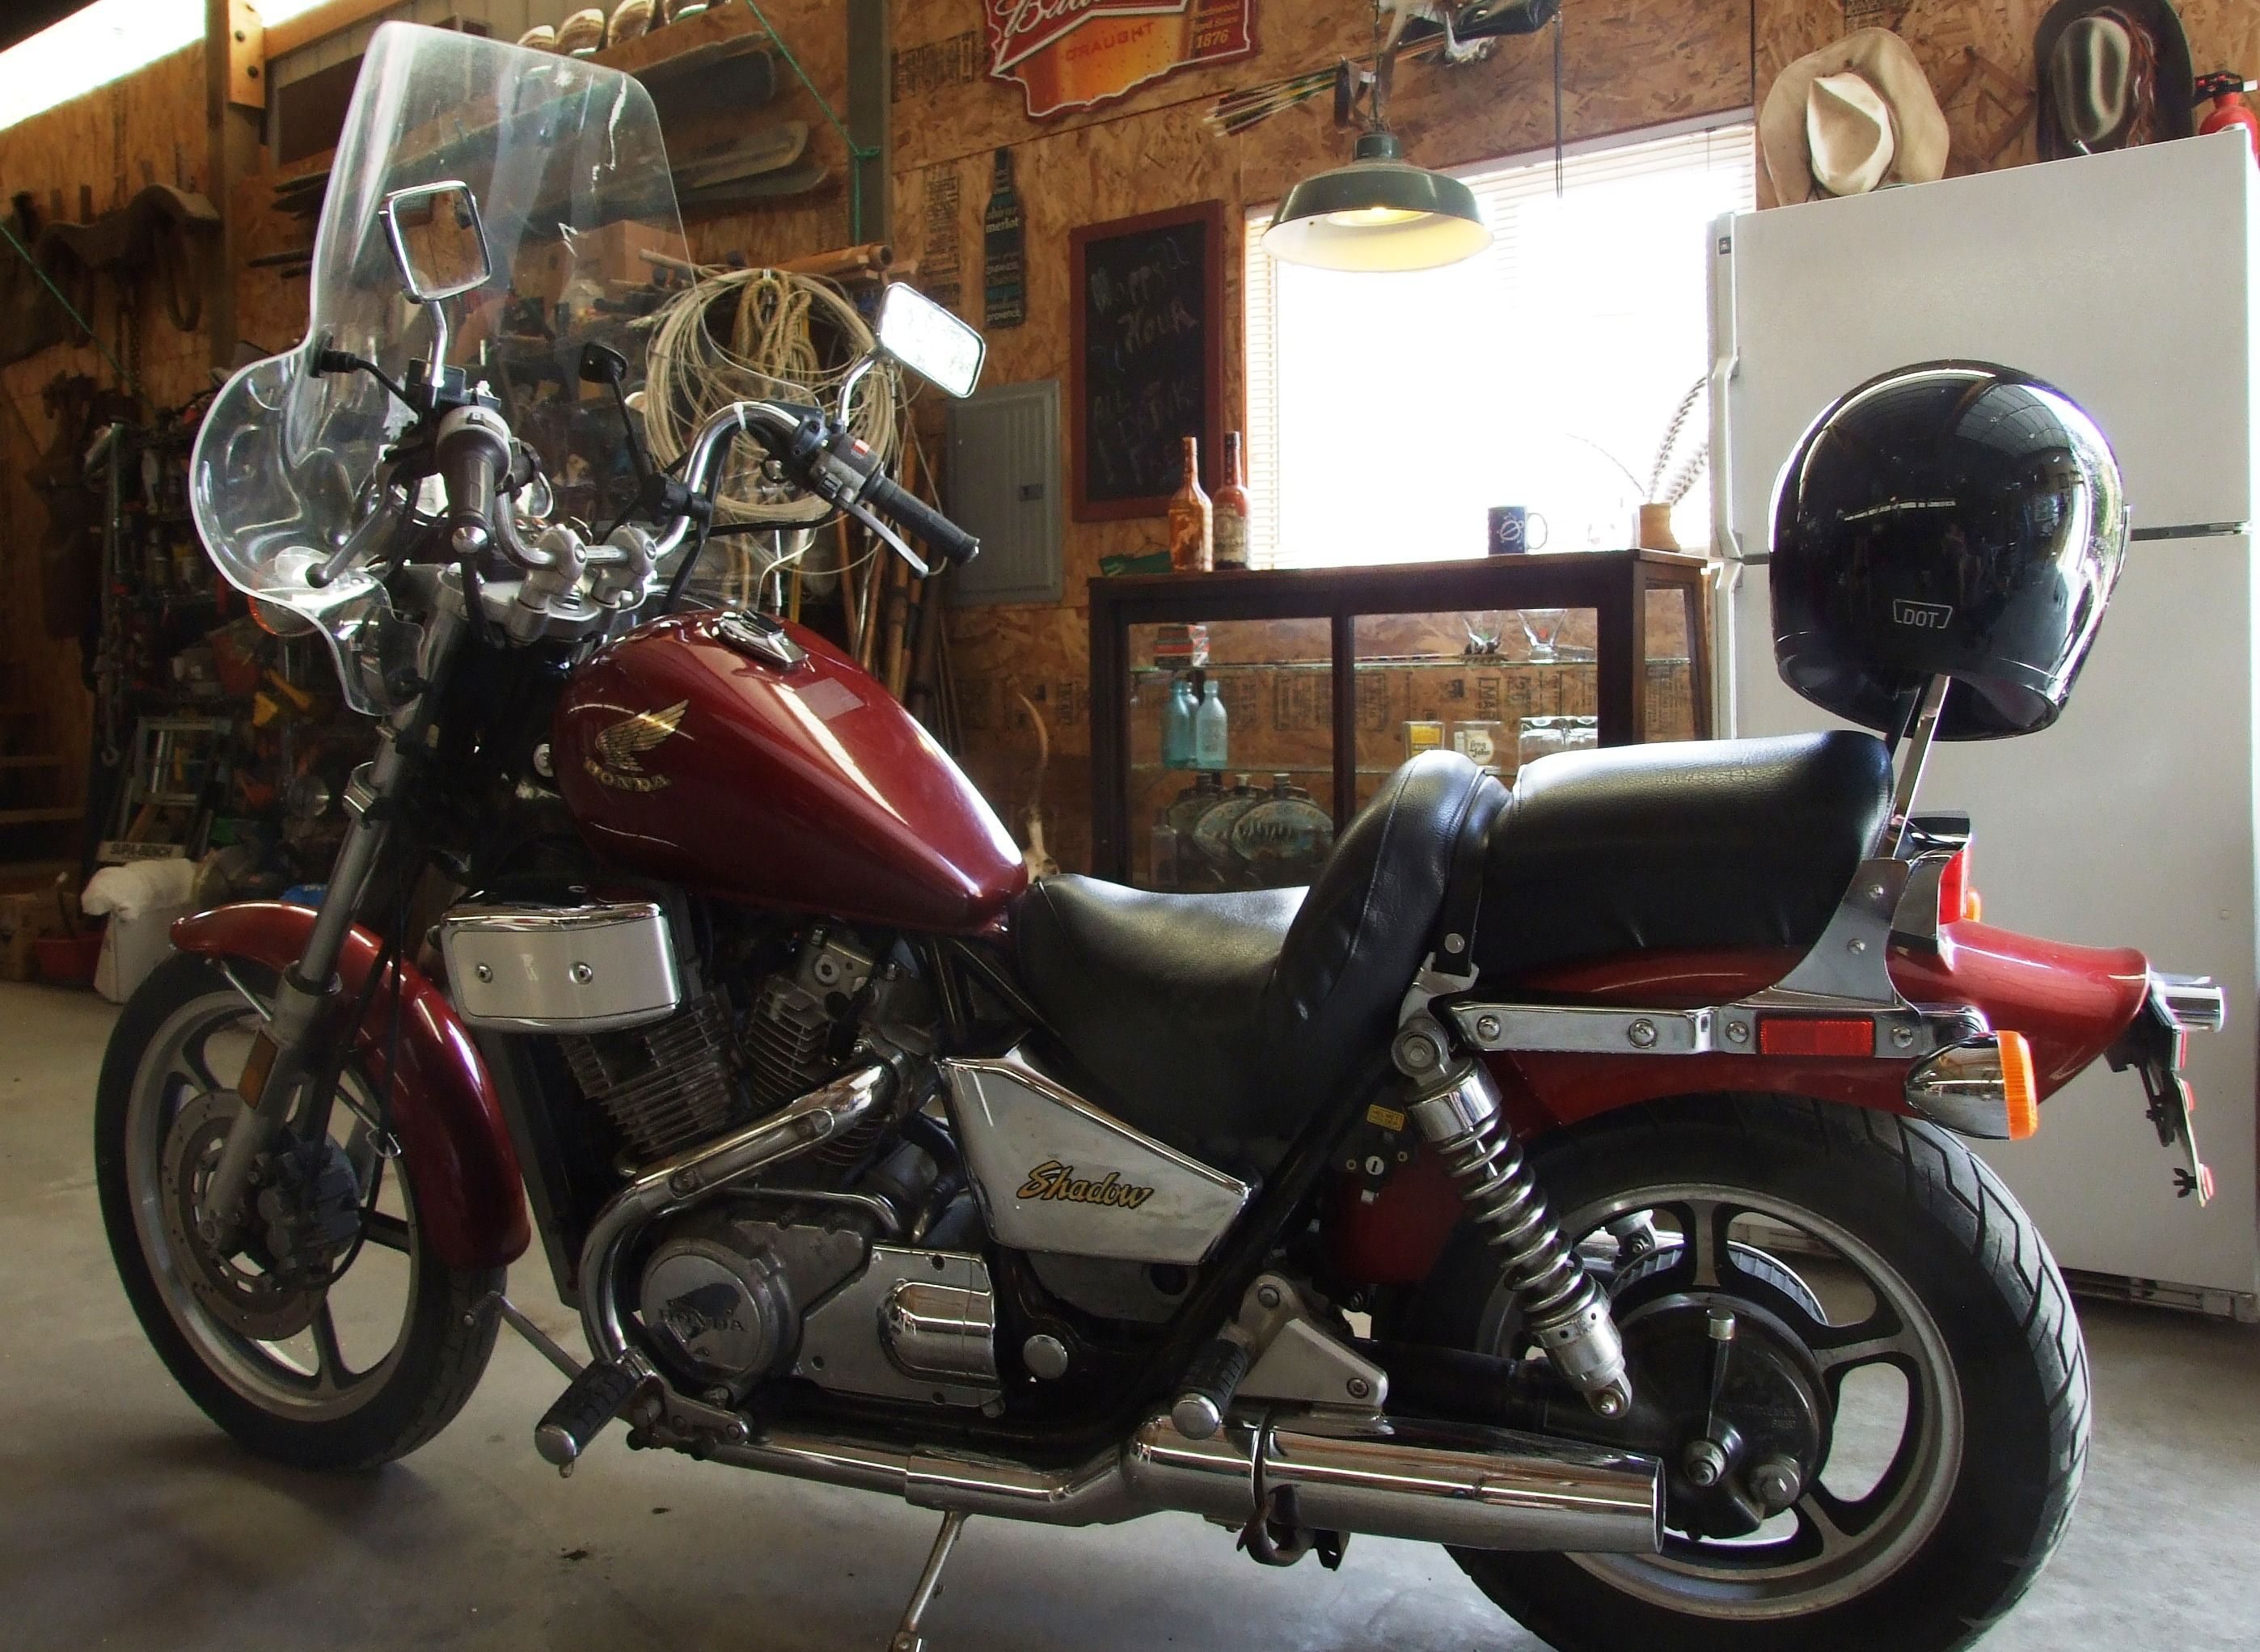 86 Honda Shadow 700  I did not think I could push my Soft